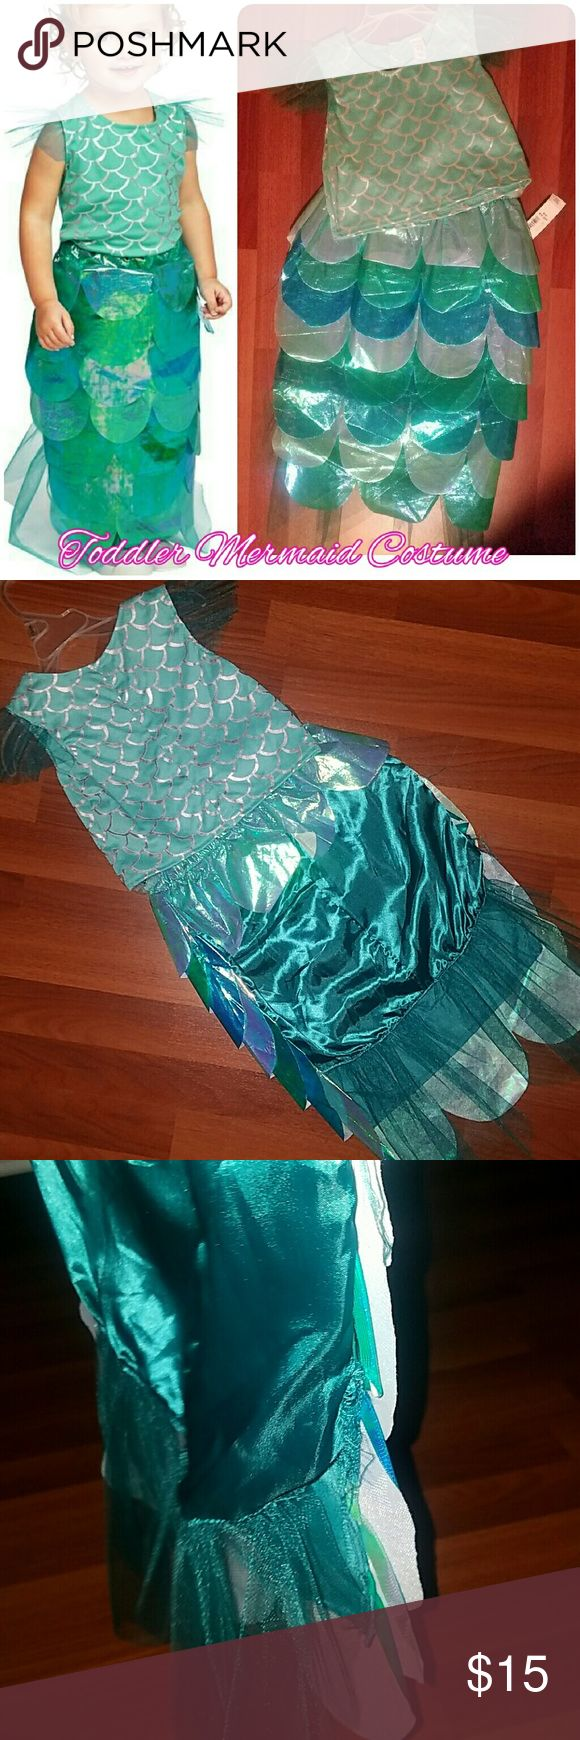 Spotted while shopping on Poshmark: Old Navy Toddler Mermaid Costume! #poshmark #fashion #shopping #style #Old Navy #Other